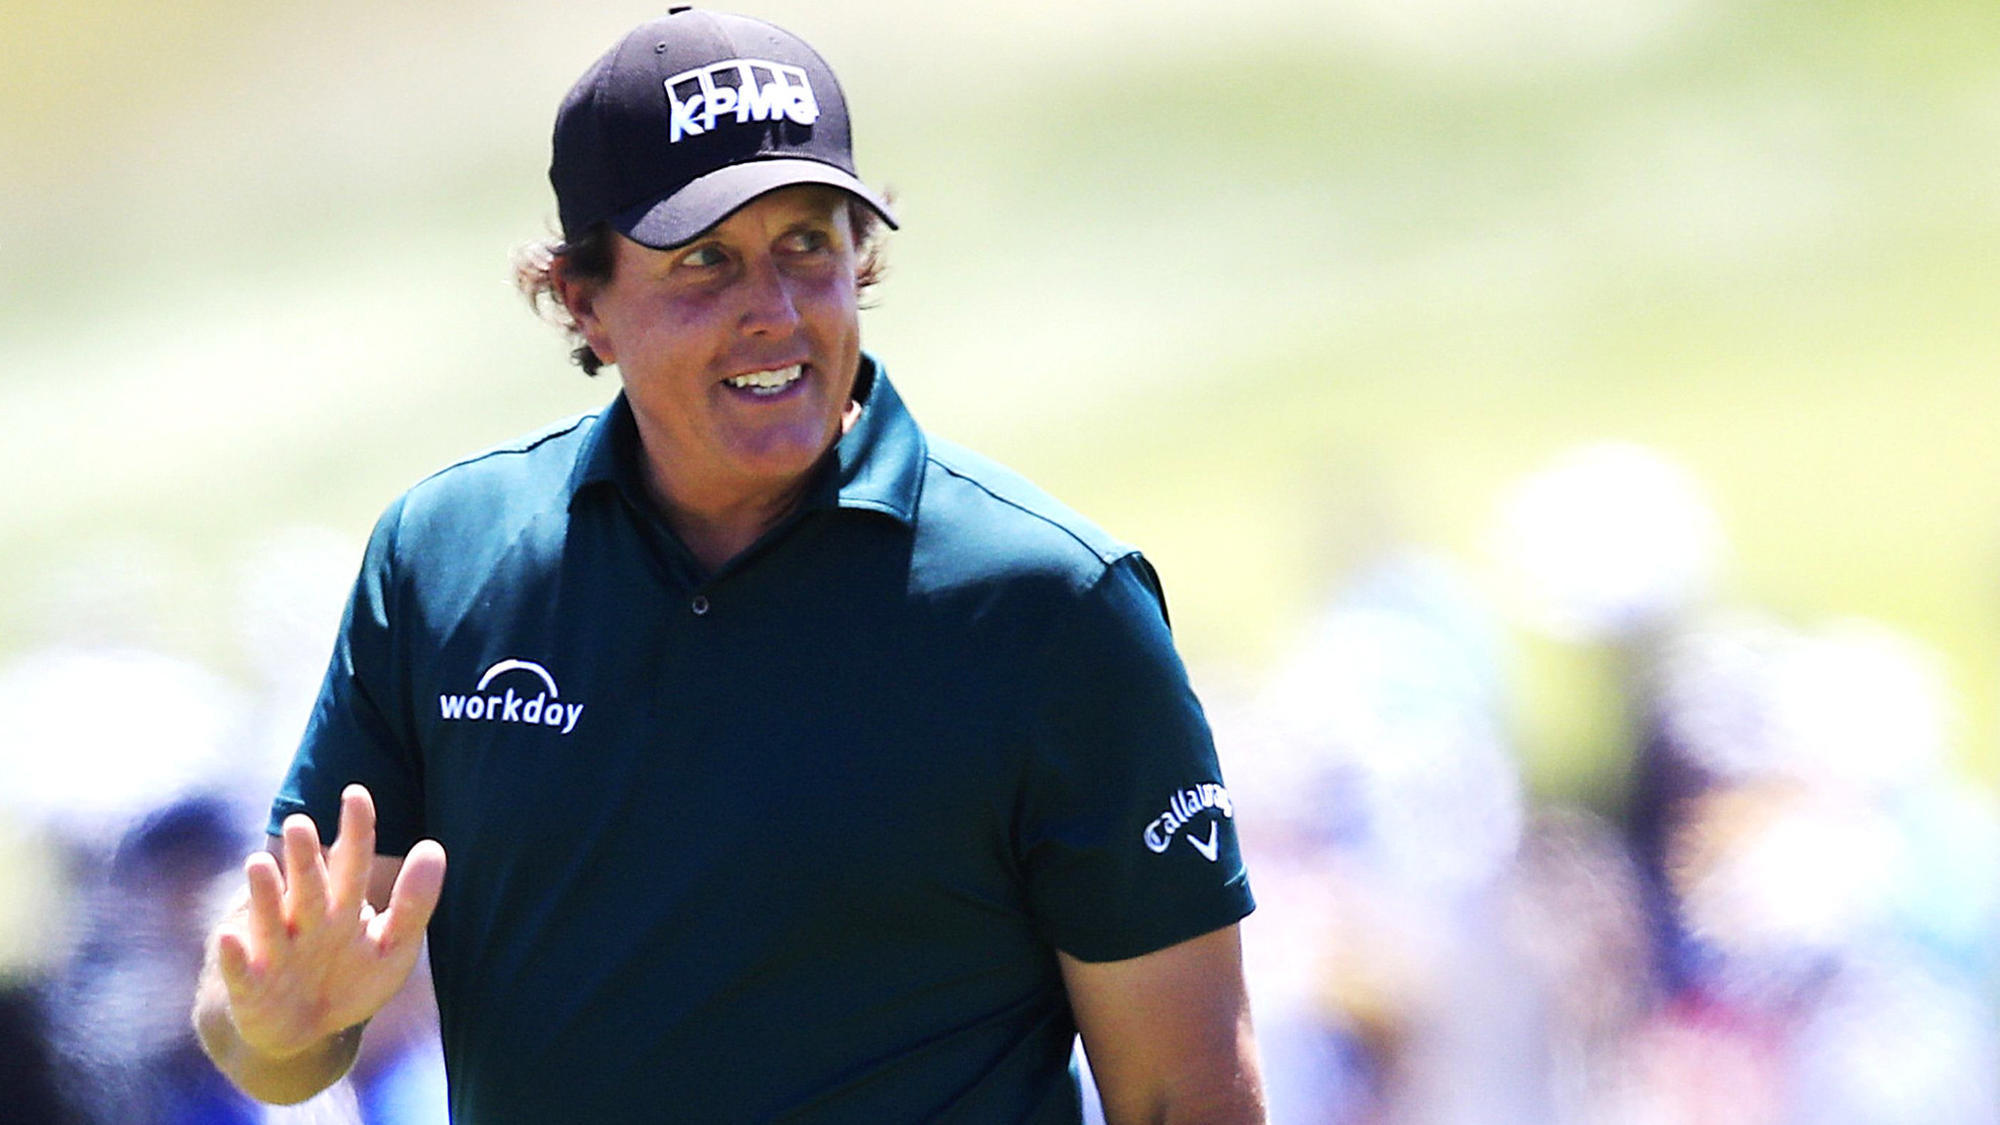 Phil Mickelson takes two-shot penalty for hitting a moving ball rather than chasing it down a slope